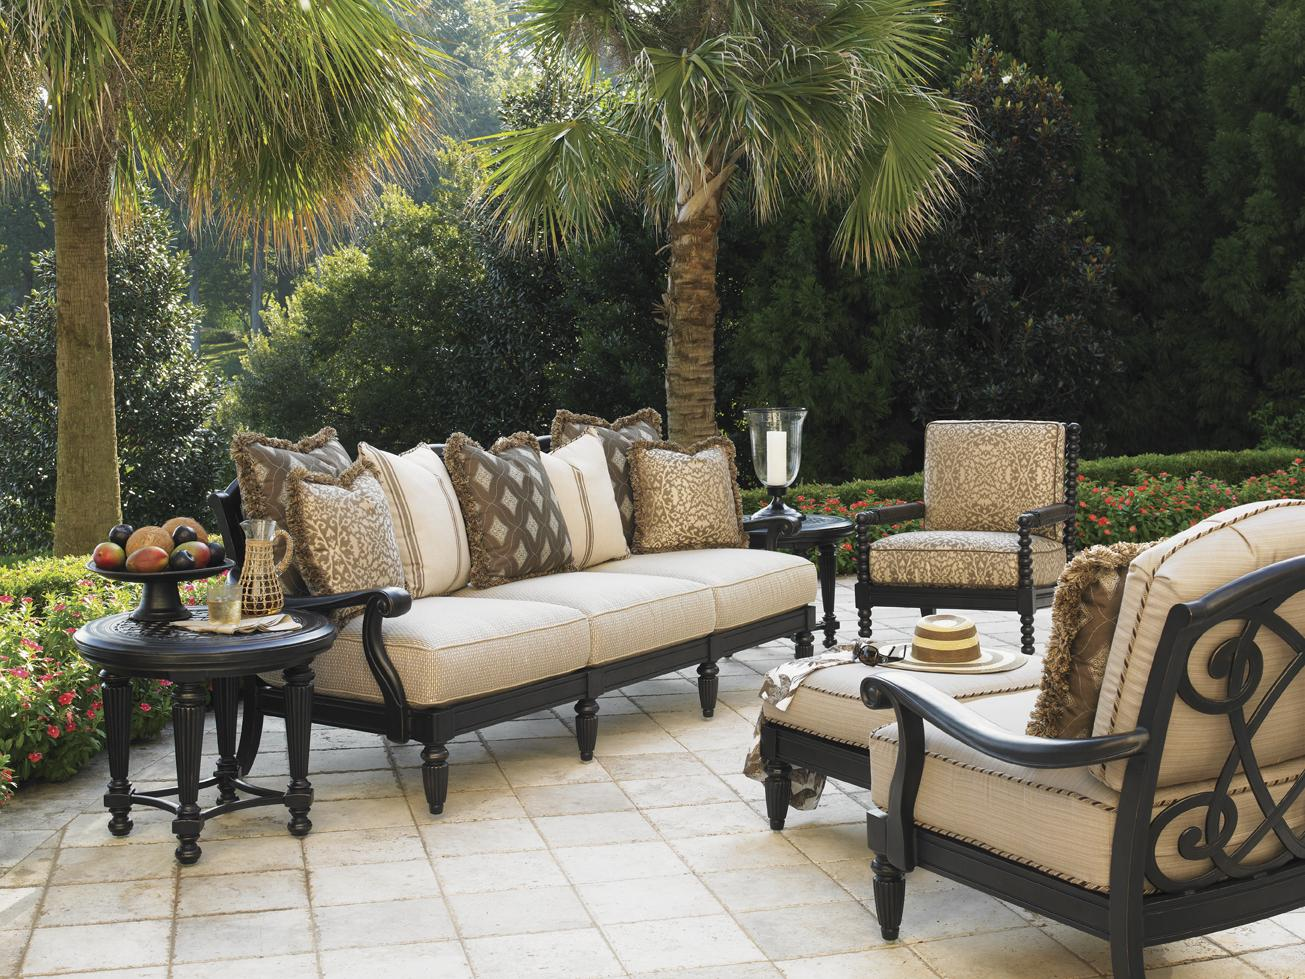 Backyard Chairs Kingstown Sedona 3190 By Tommy Bahama Outdoor Living